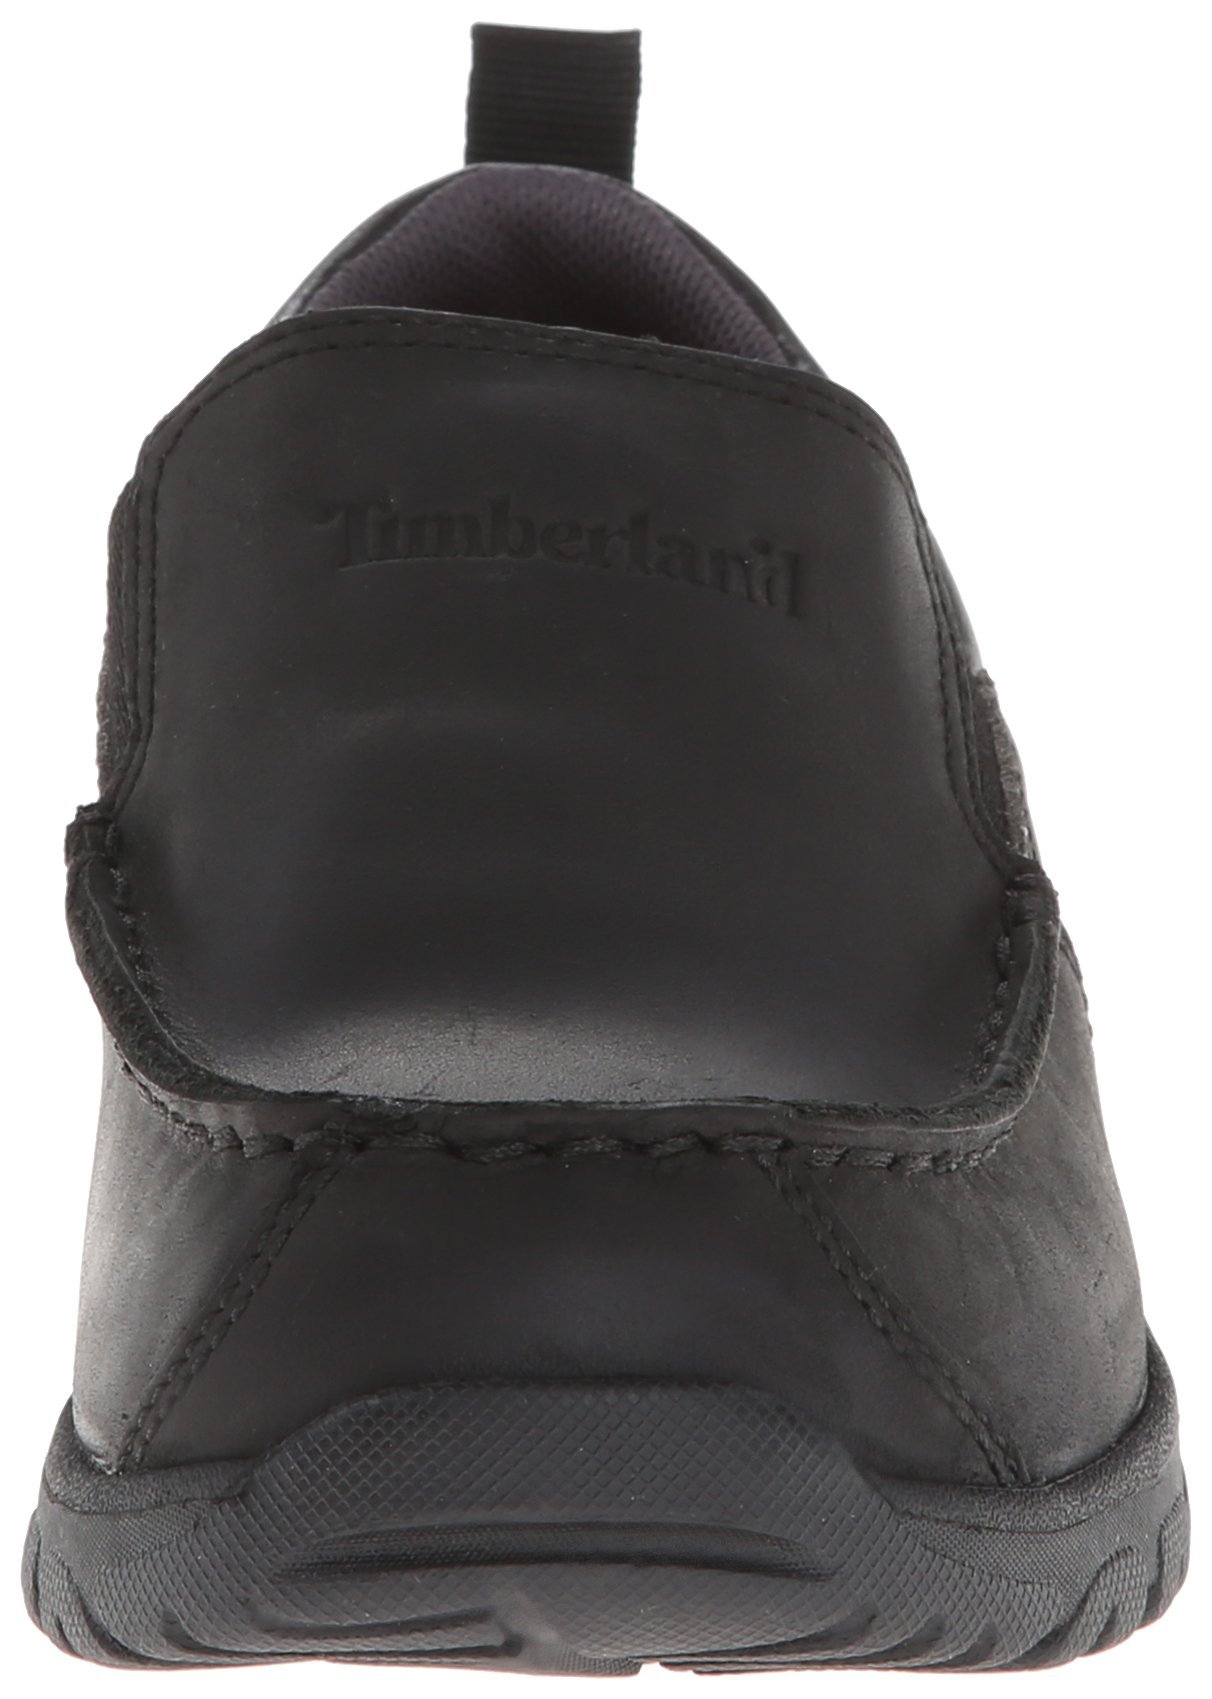 Timberland Discovery Pass Moc Toe Moc Toe Slip-On (Toddler/Little Kid/Big Kid),Black,9.5 M US Toddler by Timberland (Image #4)